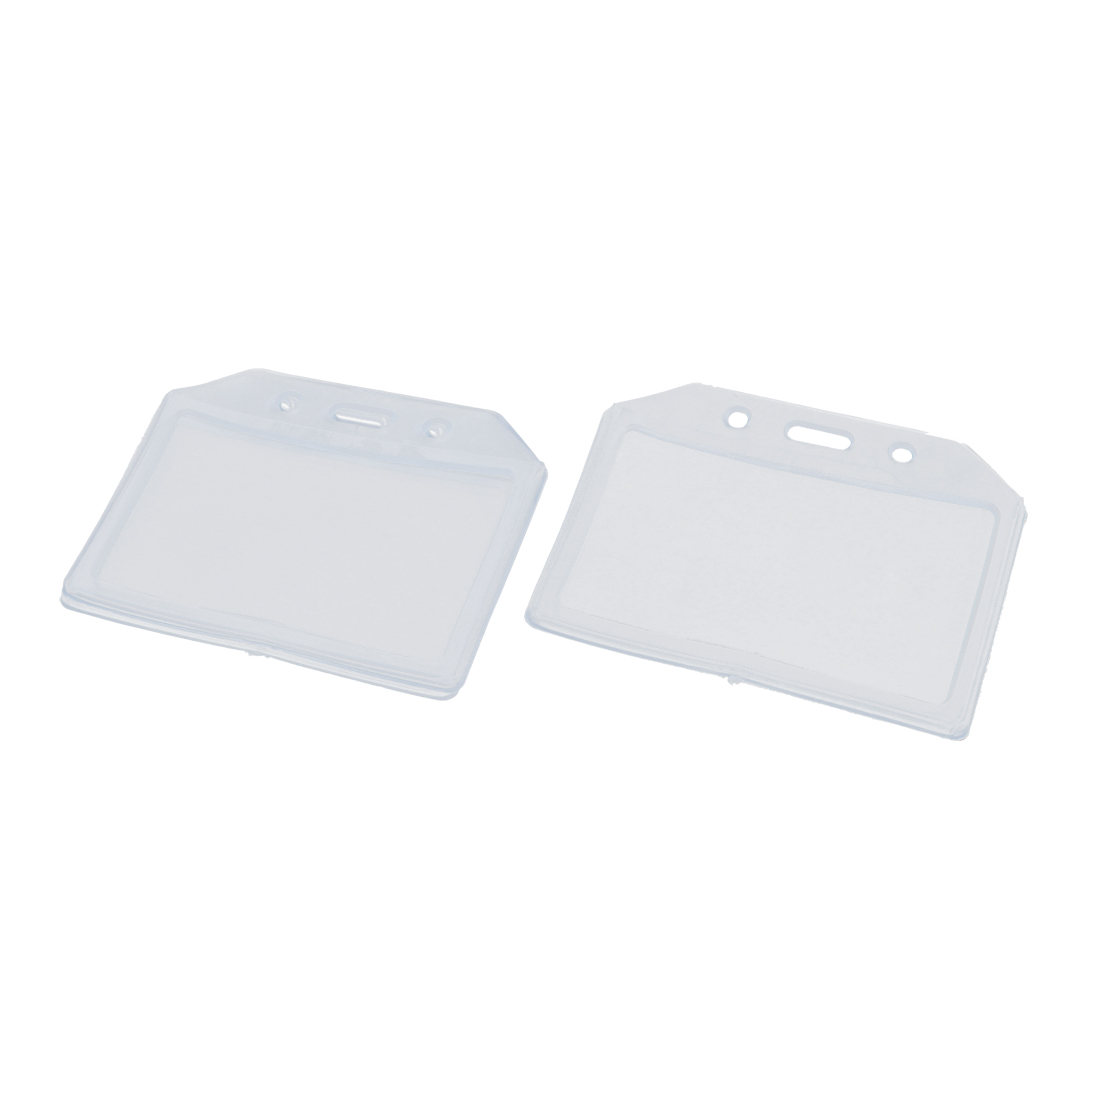 3pcs Clear Plastic Horizontal ID Badge Name Card Pocket Holders